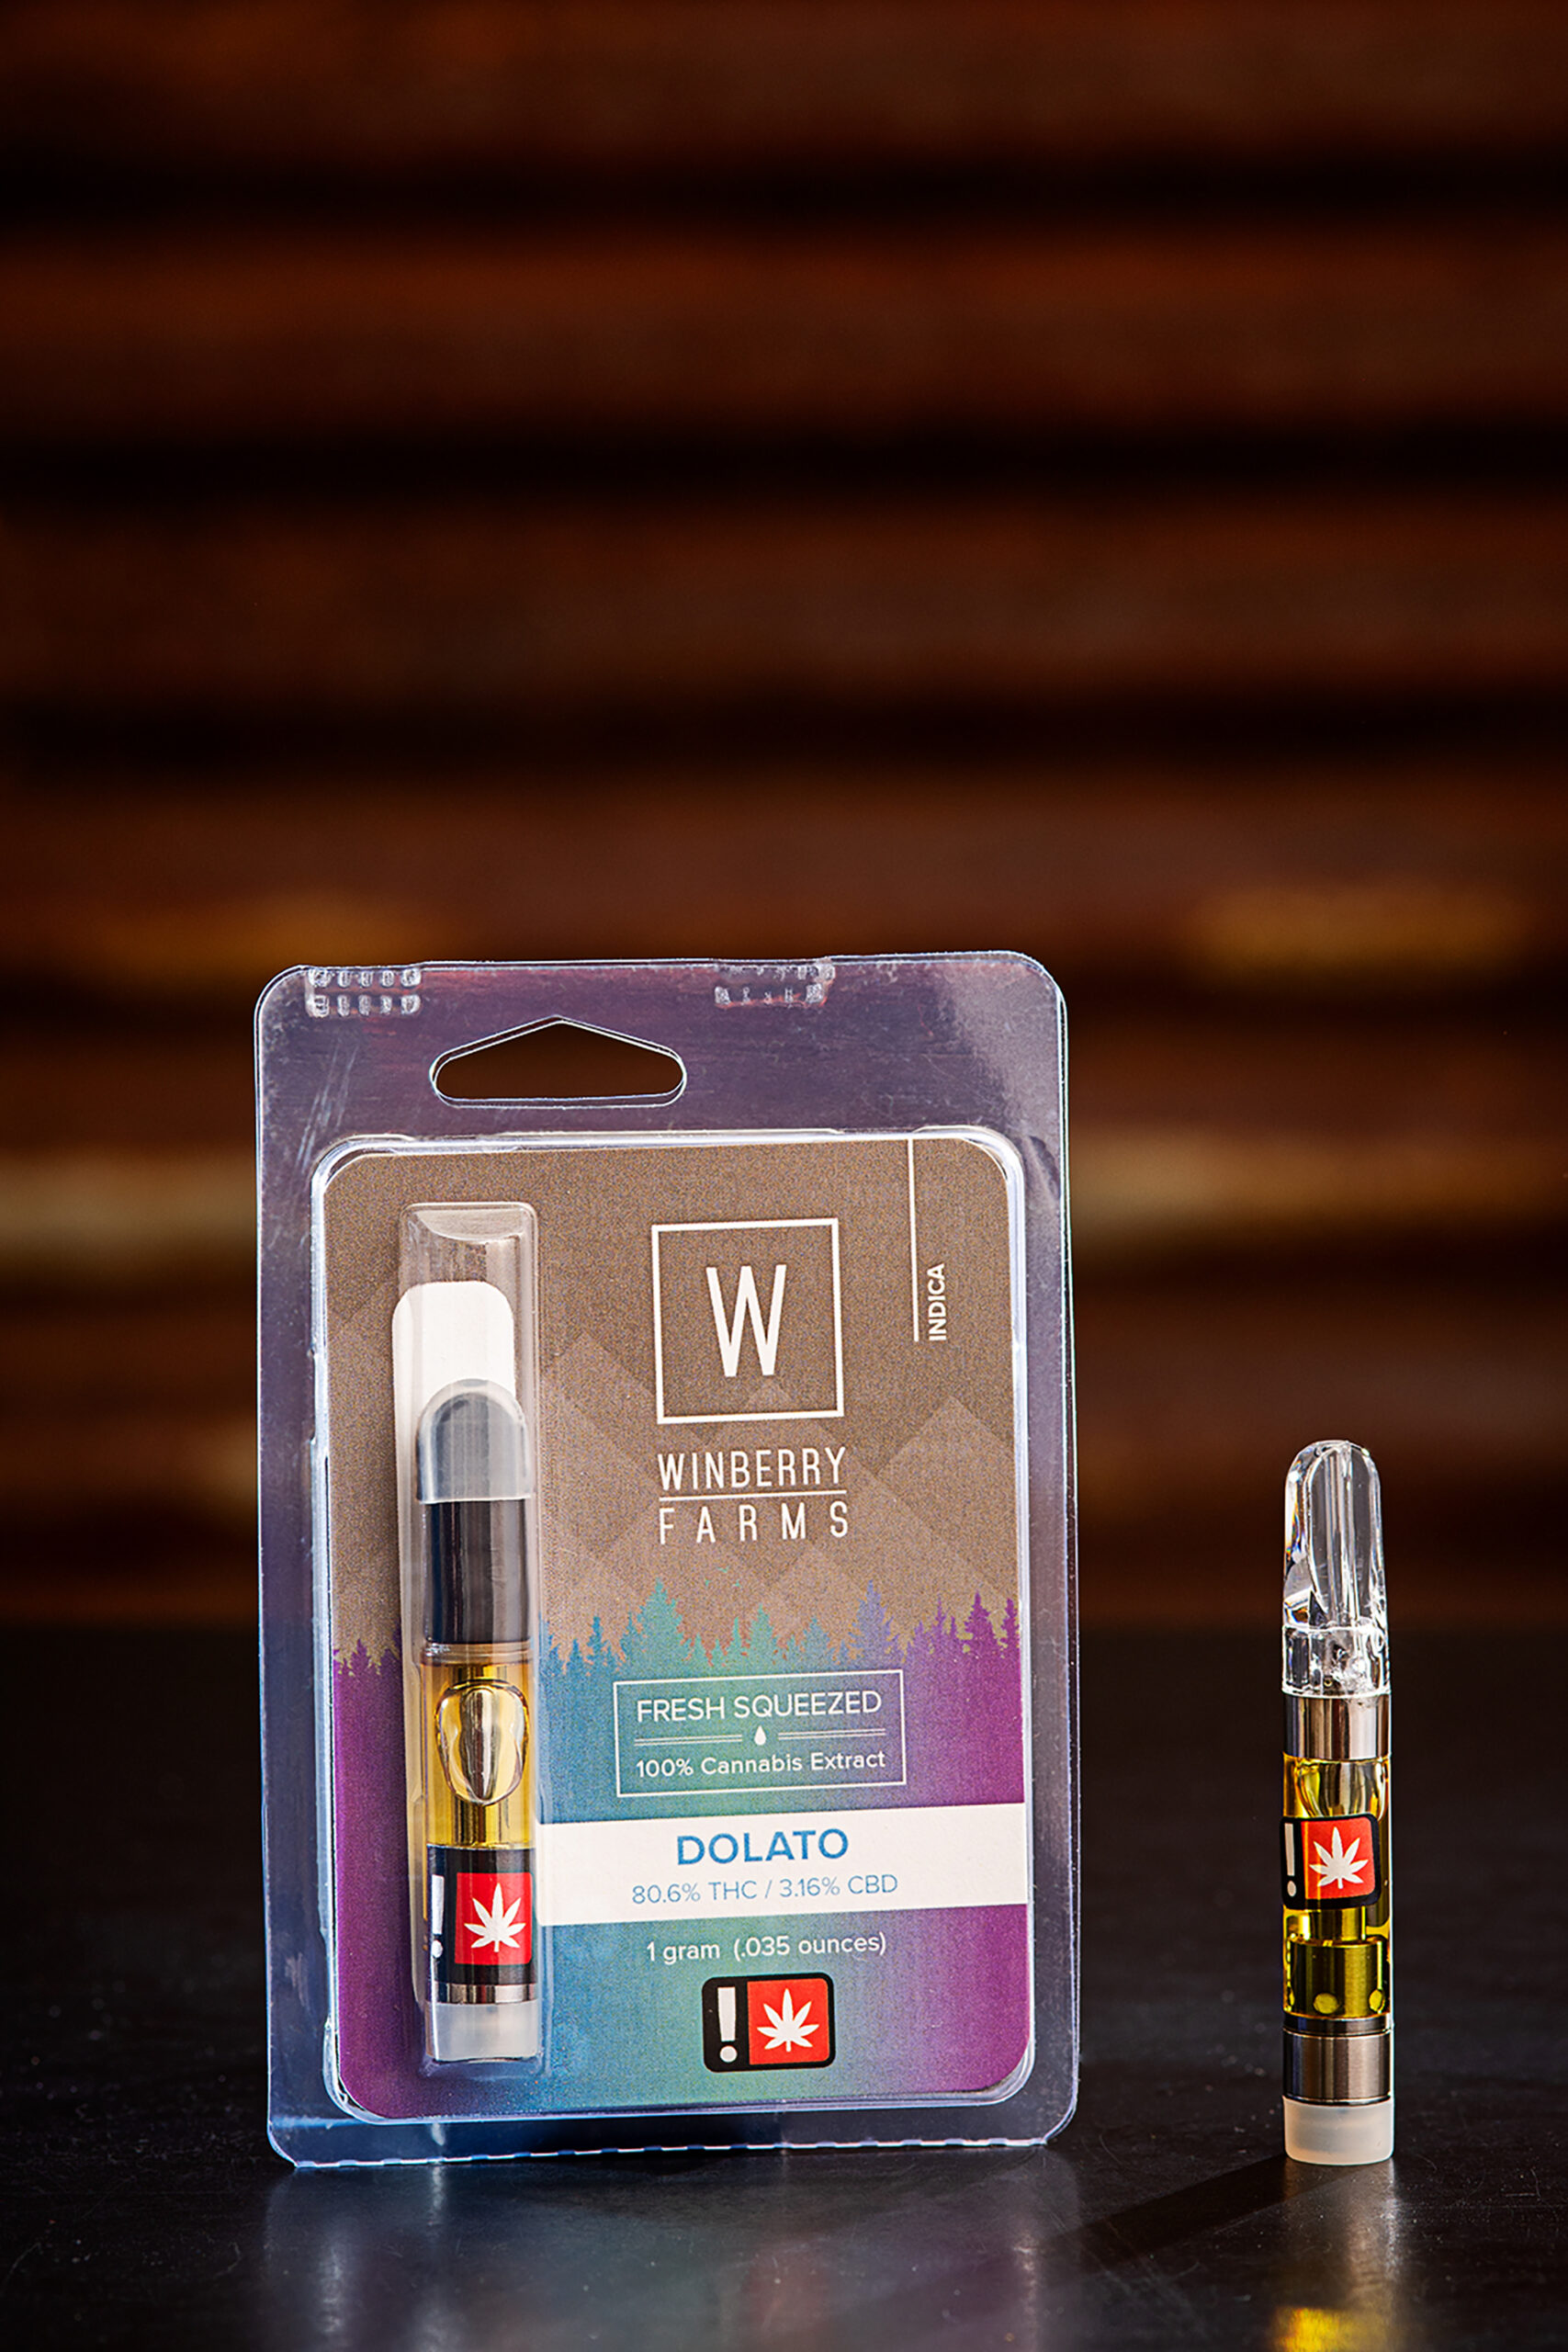 Winberry Farms Dolato Cannabis Vape Cartridge